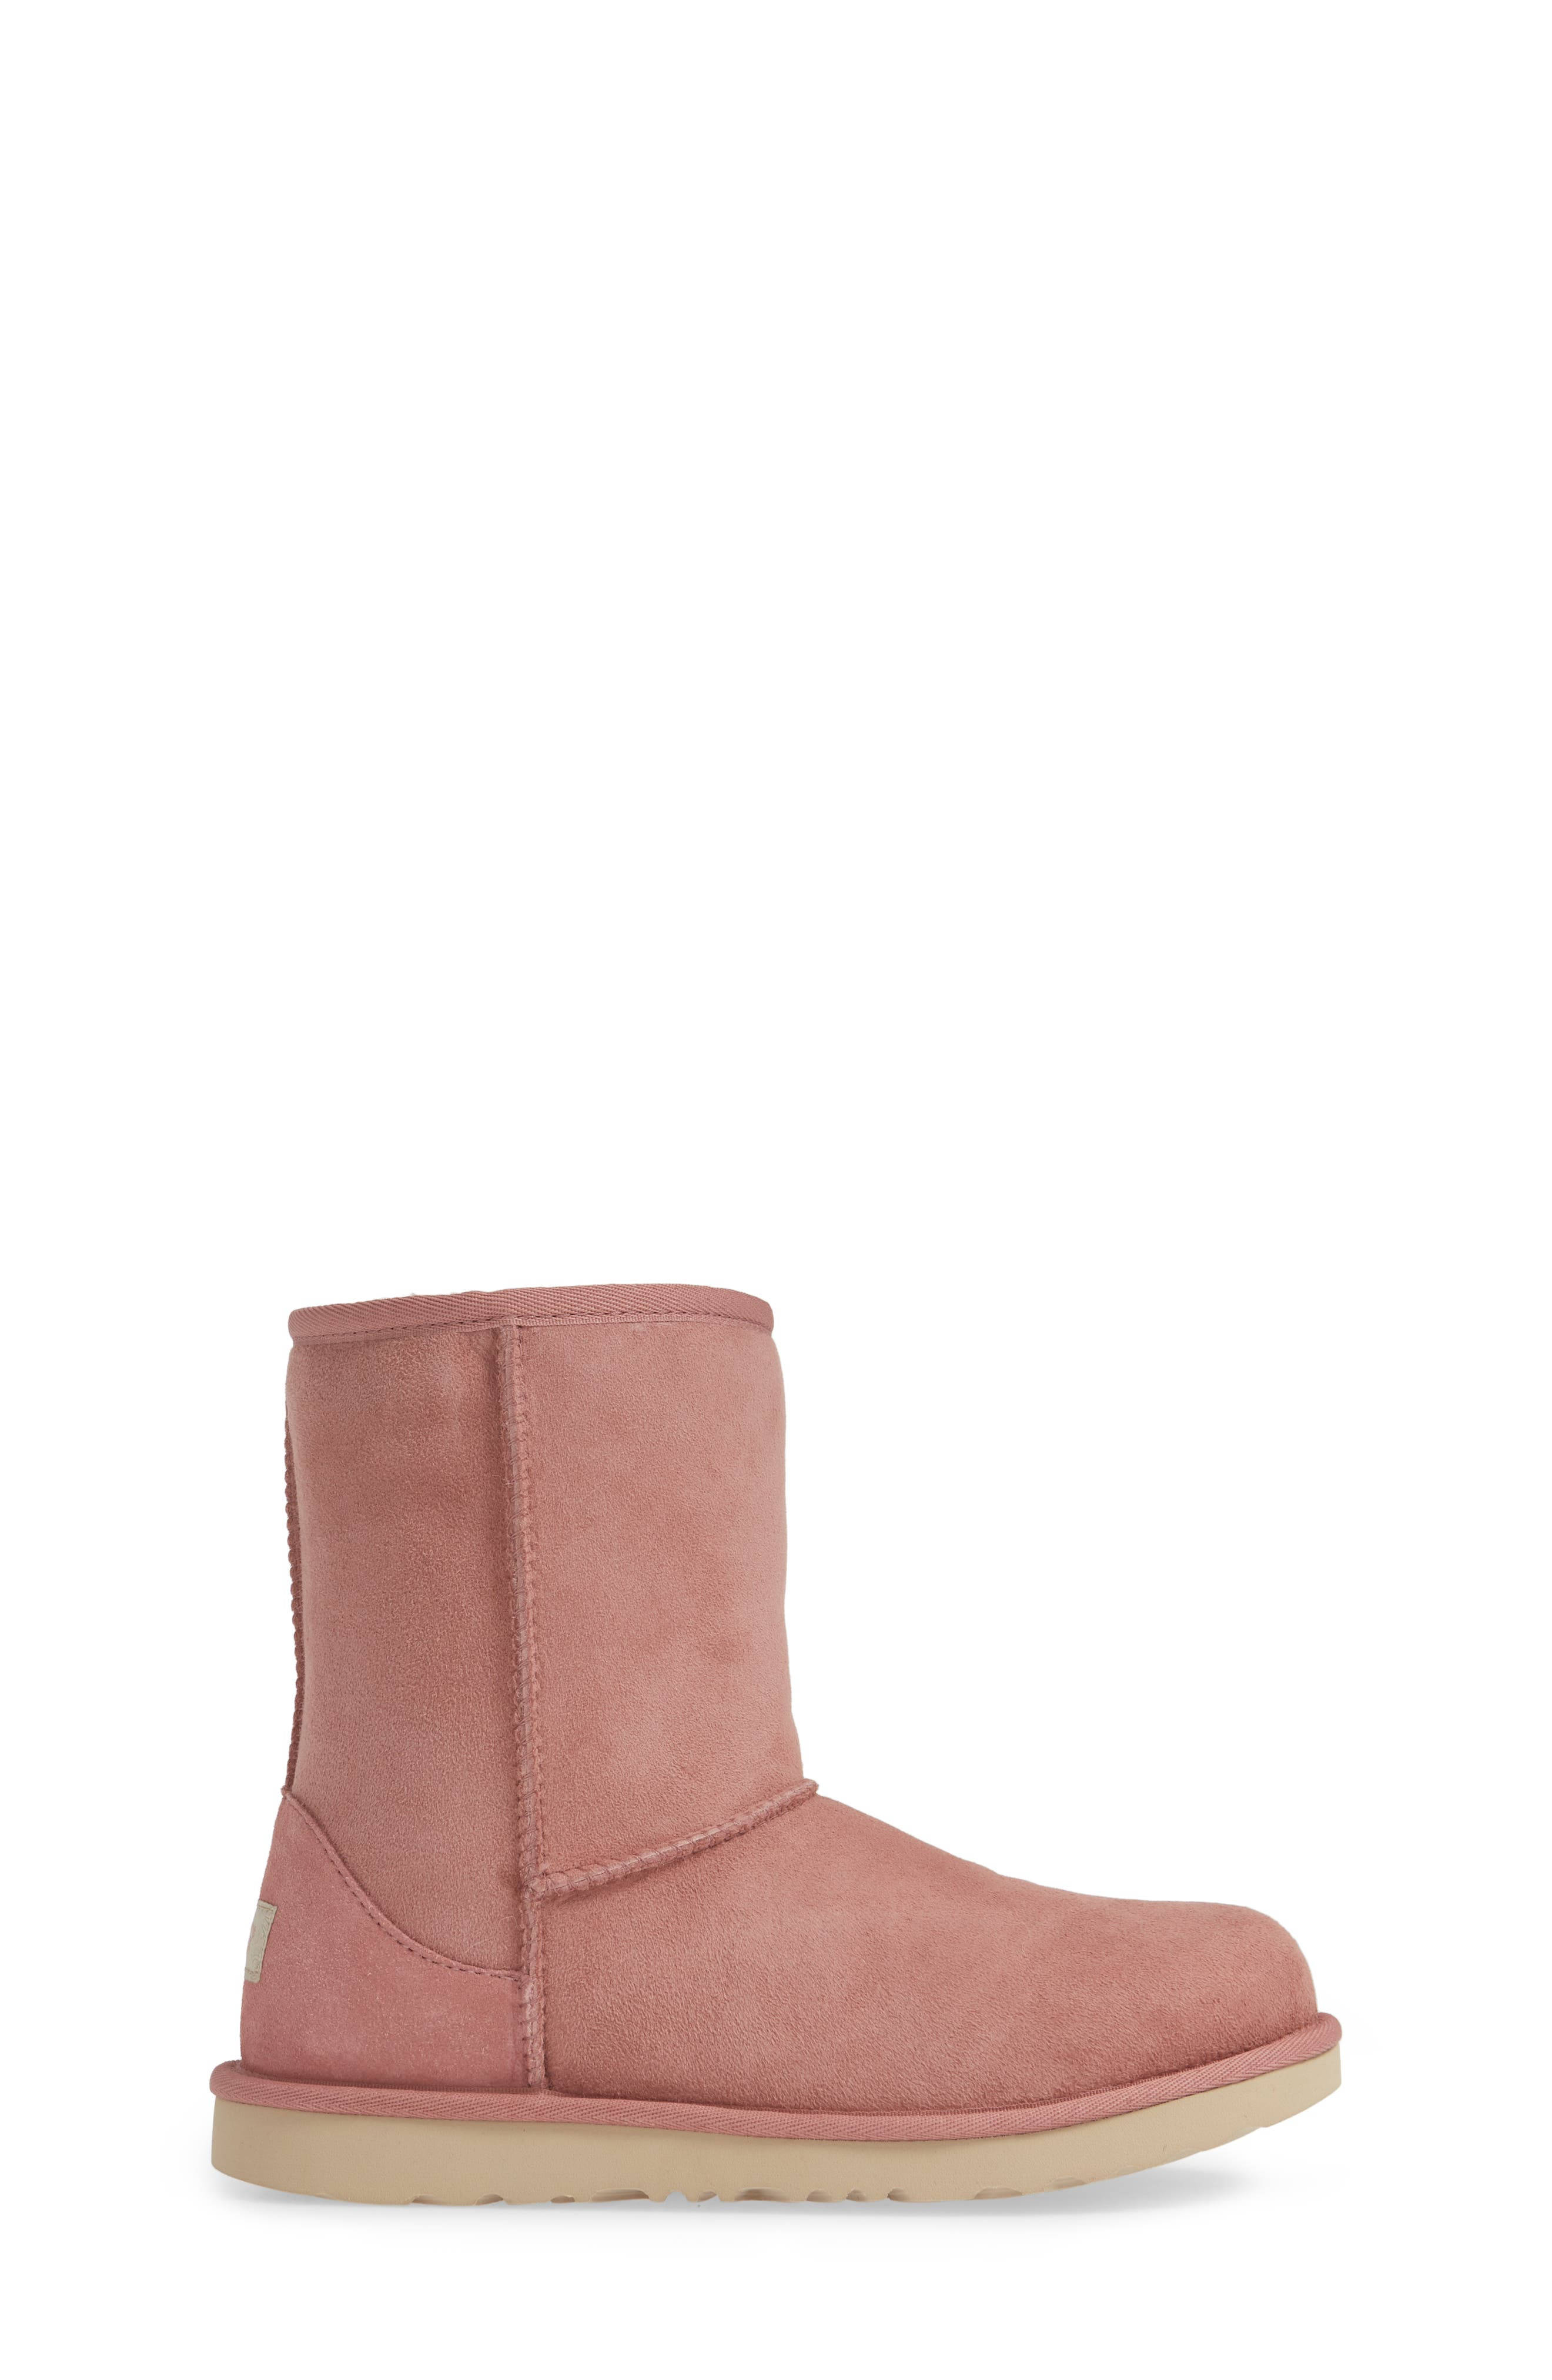 UGG<SUP>®</SUP>, Classic Short II Water Resistant Genuine Shearling Boot, Alternate thumbnail 3, color, PINK DAWN